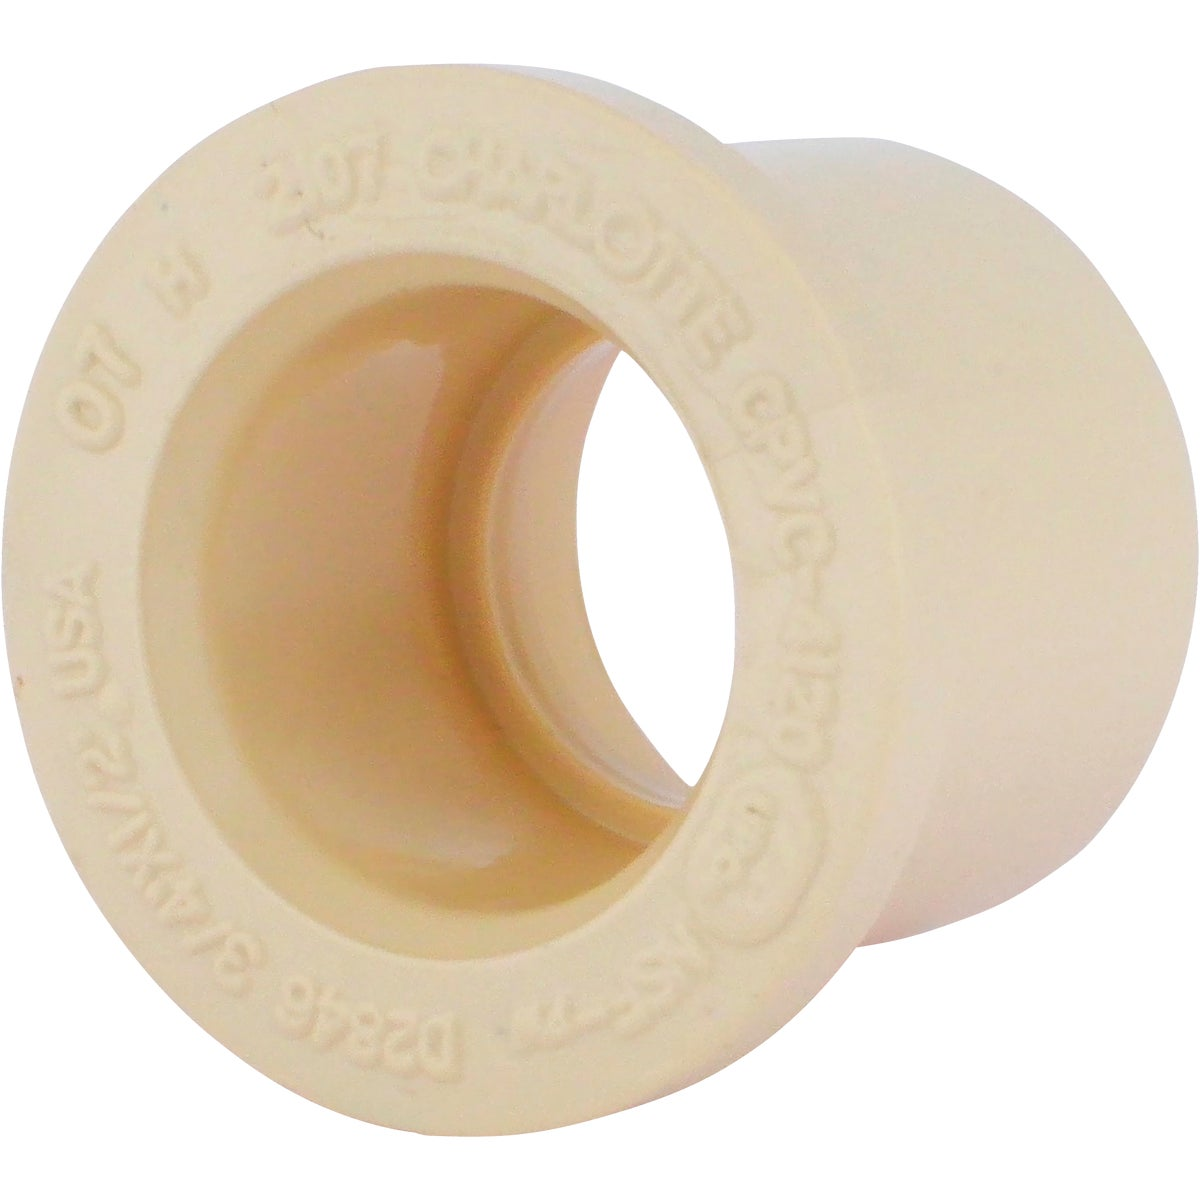 3/4X1/2 CPVC RED BUSHING - 50275 by Genova Inc